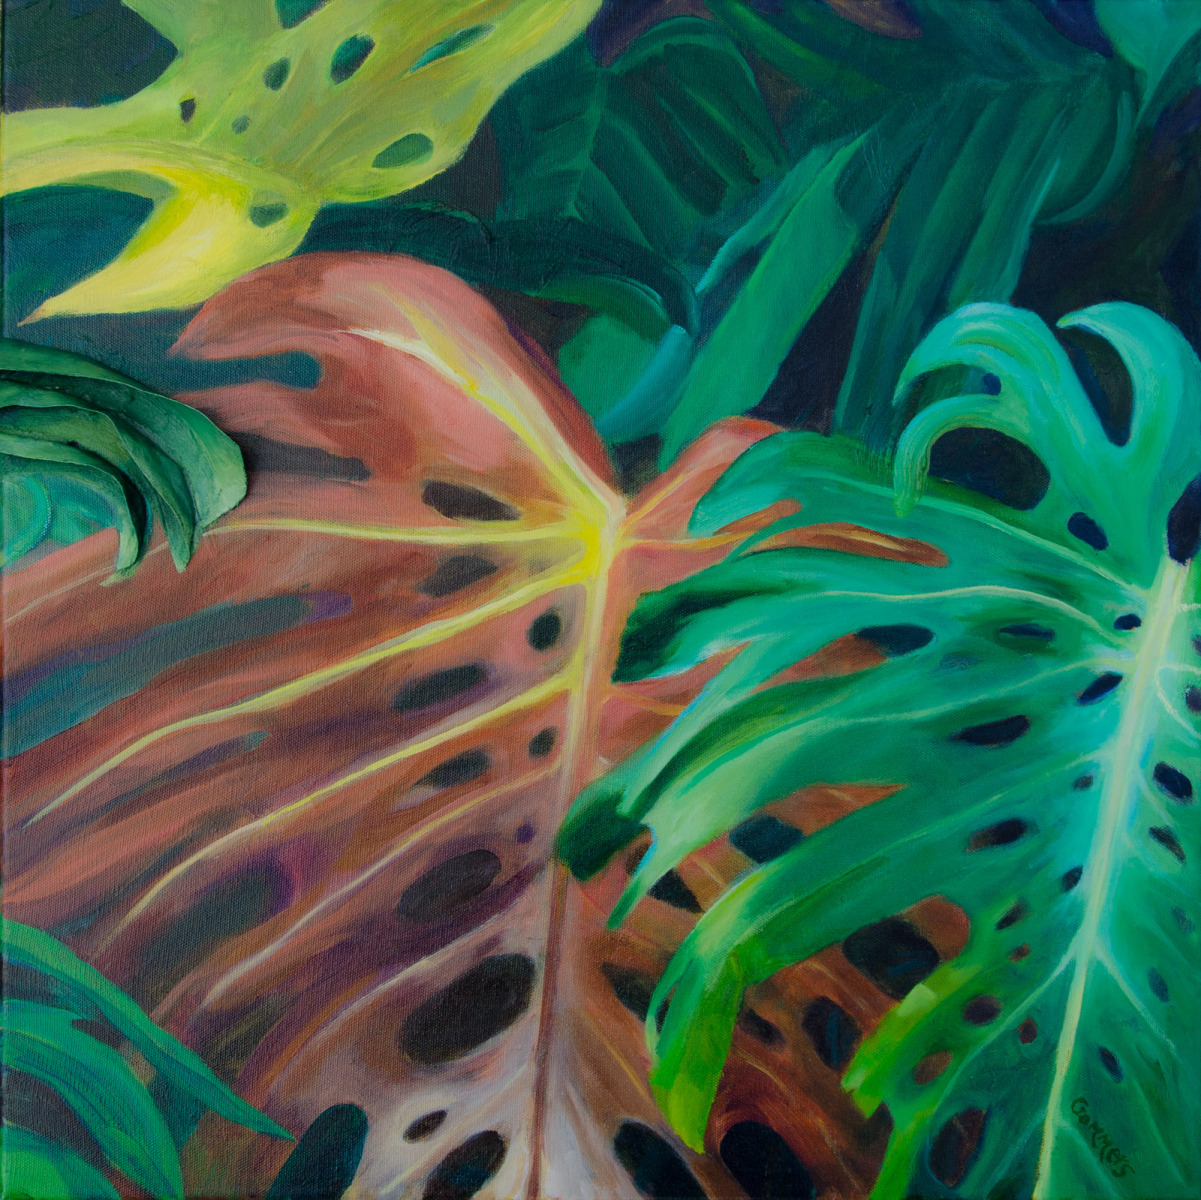 "02 Philodendron Relief, Oil on Canvas, 20 x 20"" Gallery wrap  (Sold)"